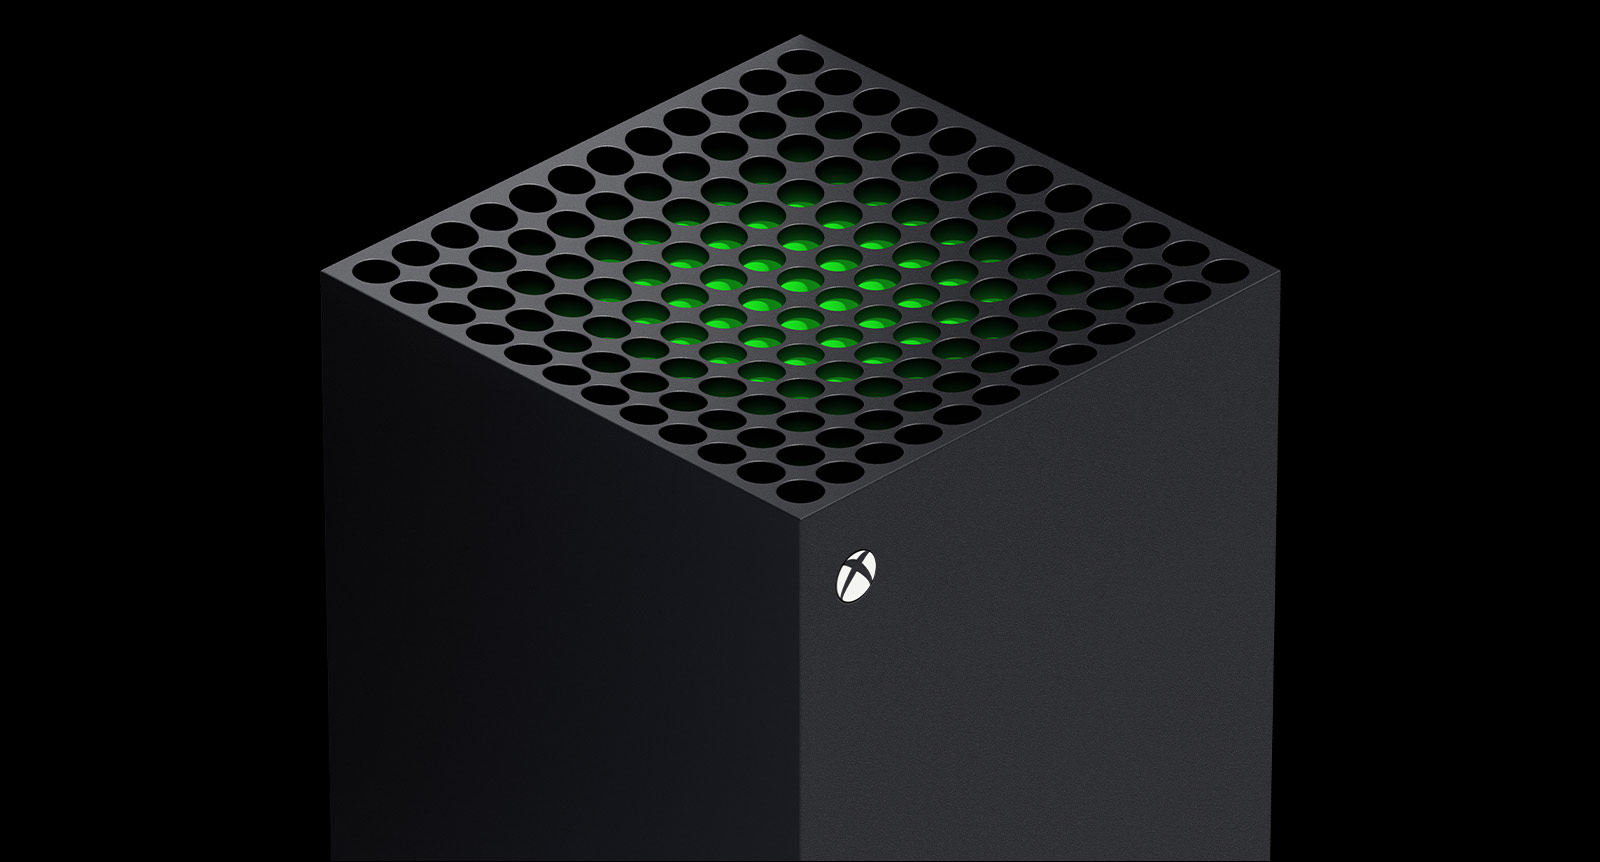 Backwards Compatible Games On Xbox Series X Will Support New Quick Resume Feature And HDR, Microsoft Says